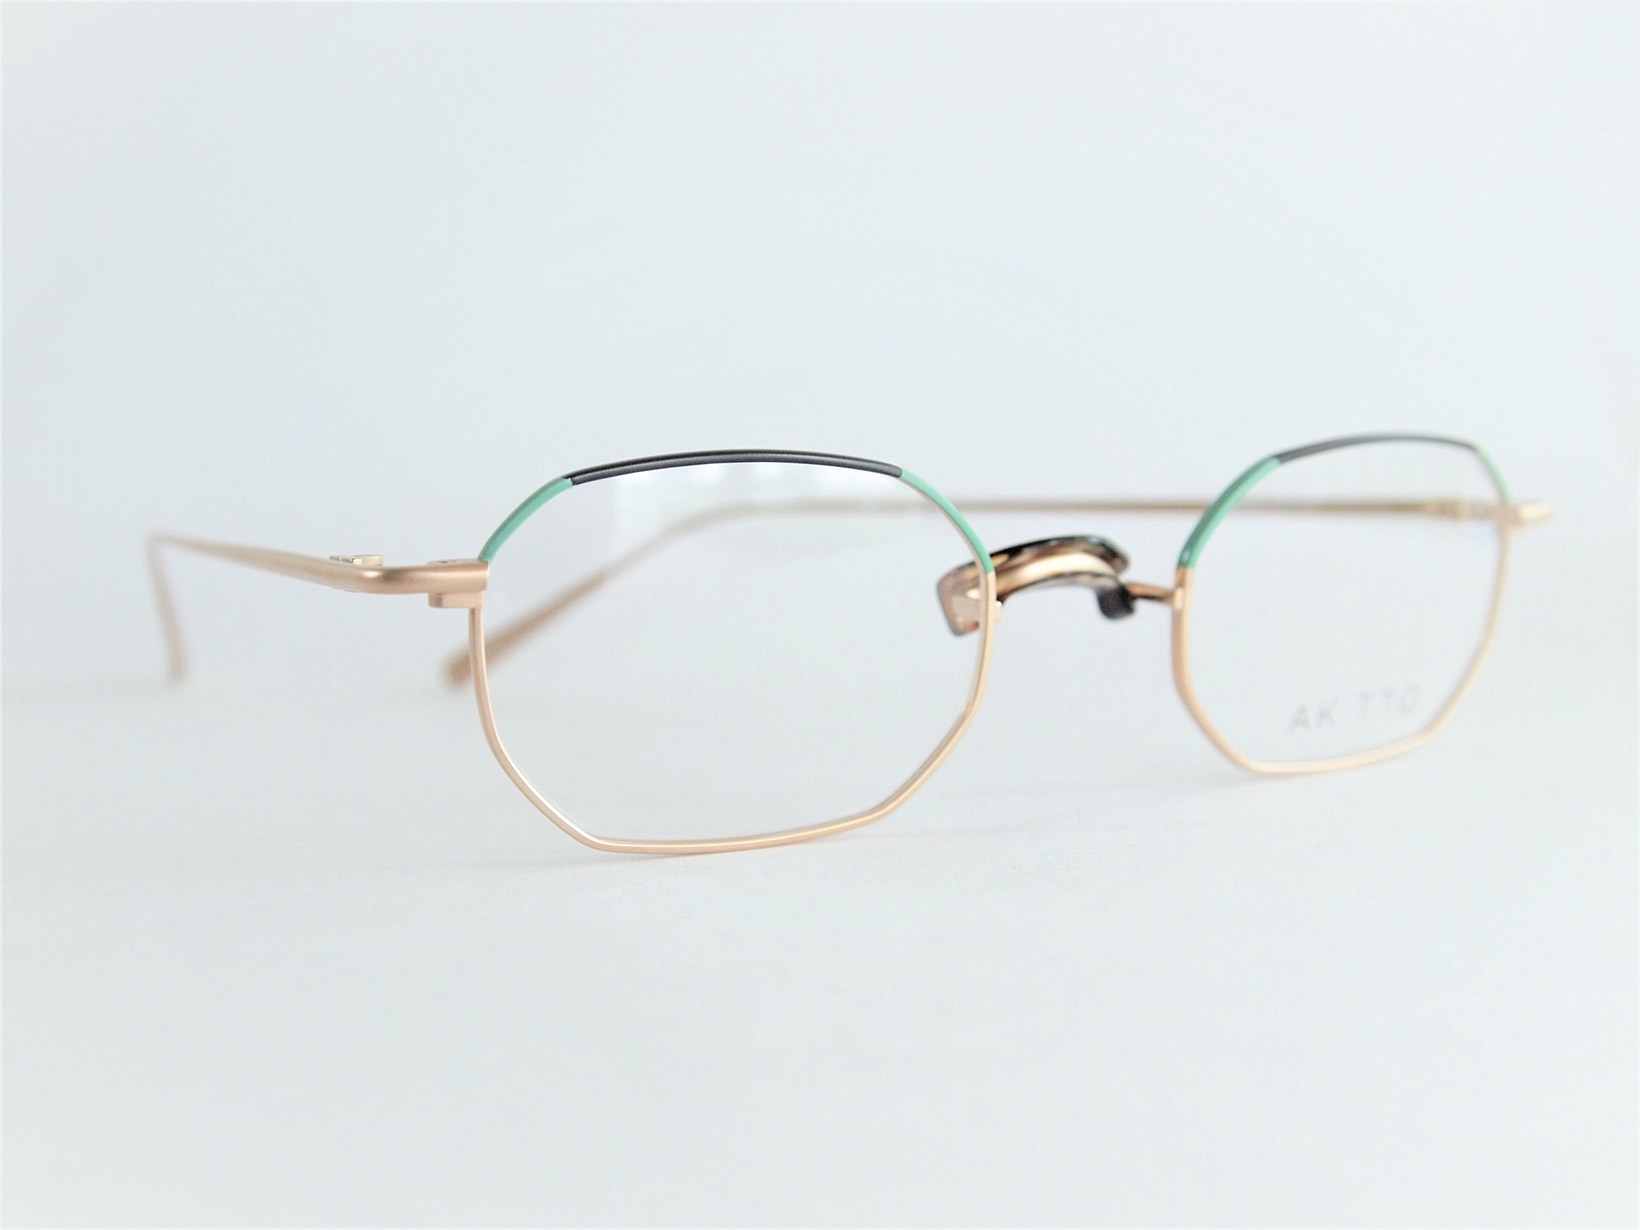 AKITTO 2018-3rd him2 color|4 size:45□22 material:titanium price:¥35,750-(+tax) *推奨プラスチックパッドは別売り